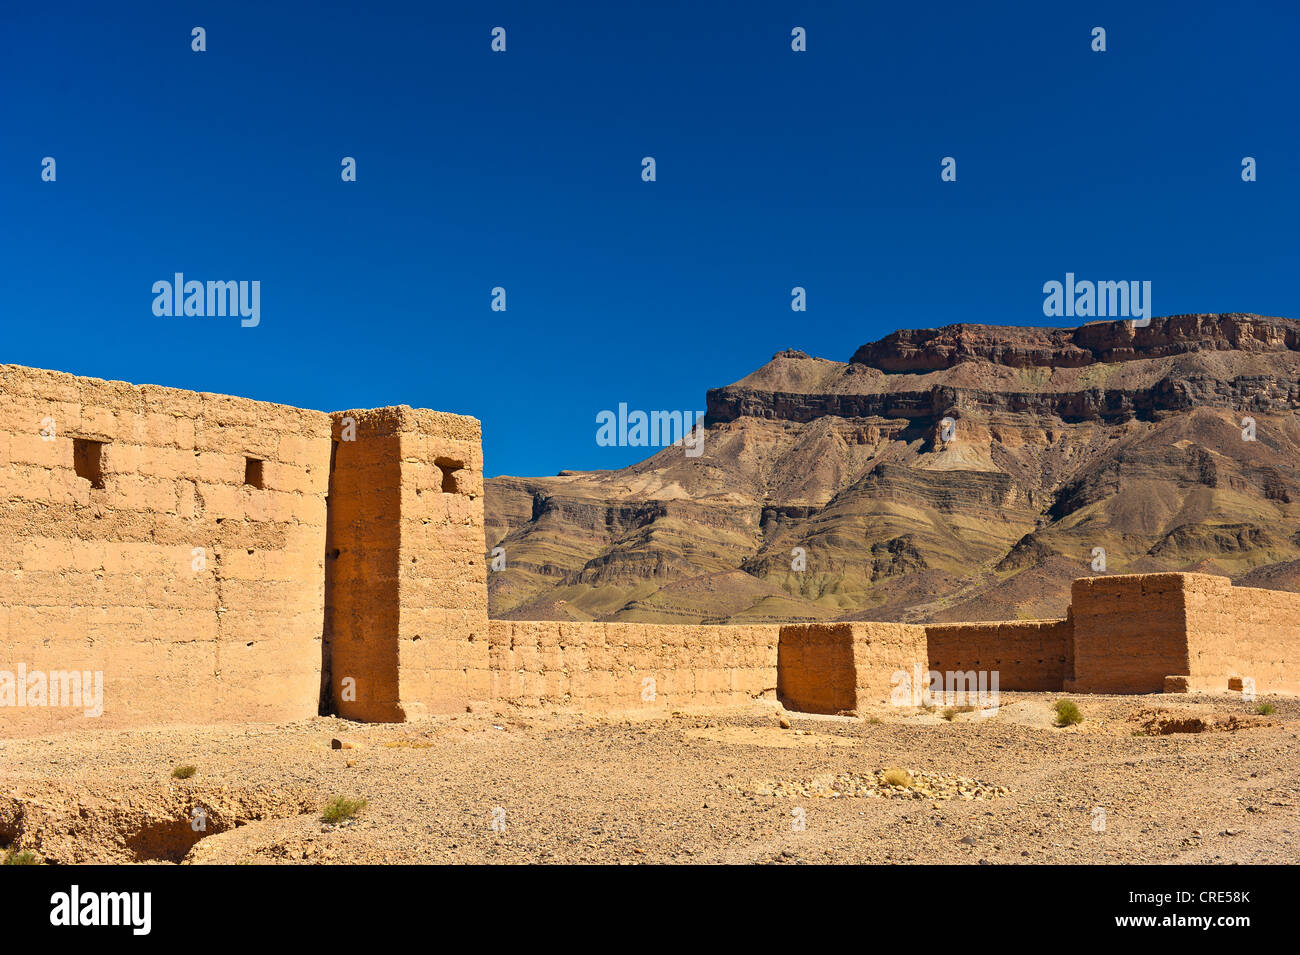 Taouirt Kasbah, mud fortress, mud brick buildings of the Berber tribes, Tighremt, Draa Valley, Southern Morocco, Stock Photo